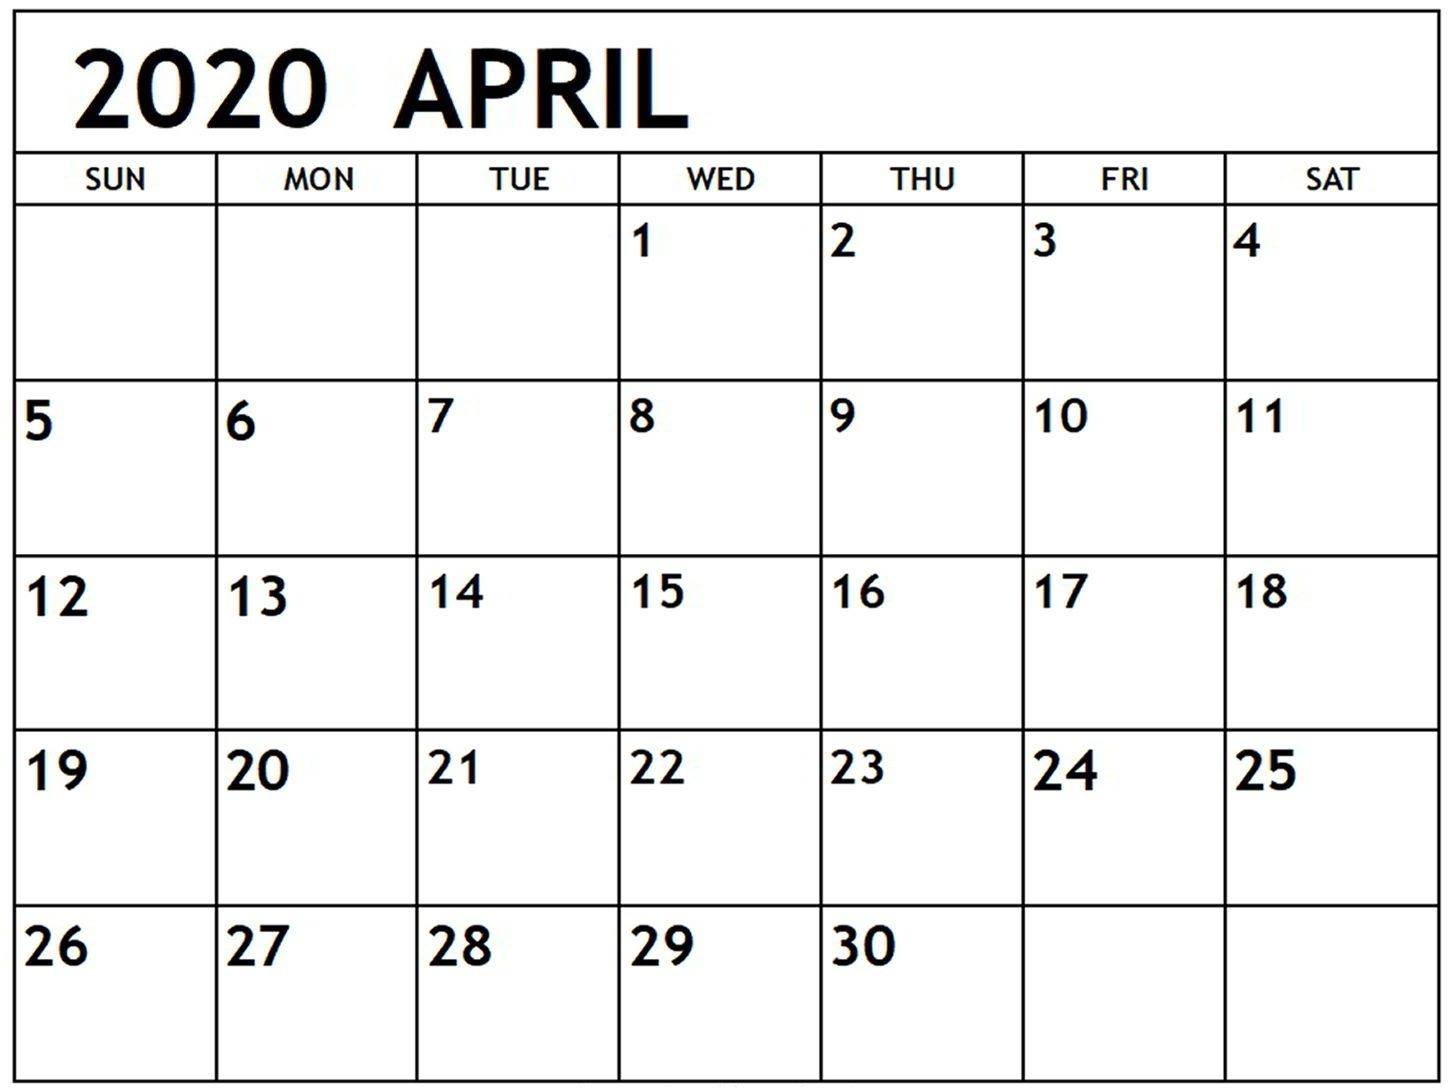 April 2020 Calendar Pdf Sheet For Exam Free Printable Calendar